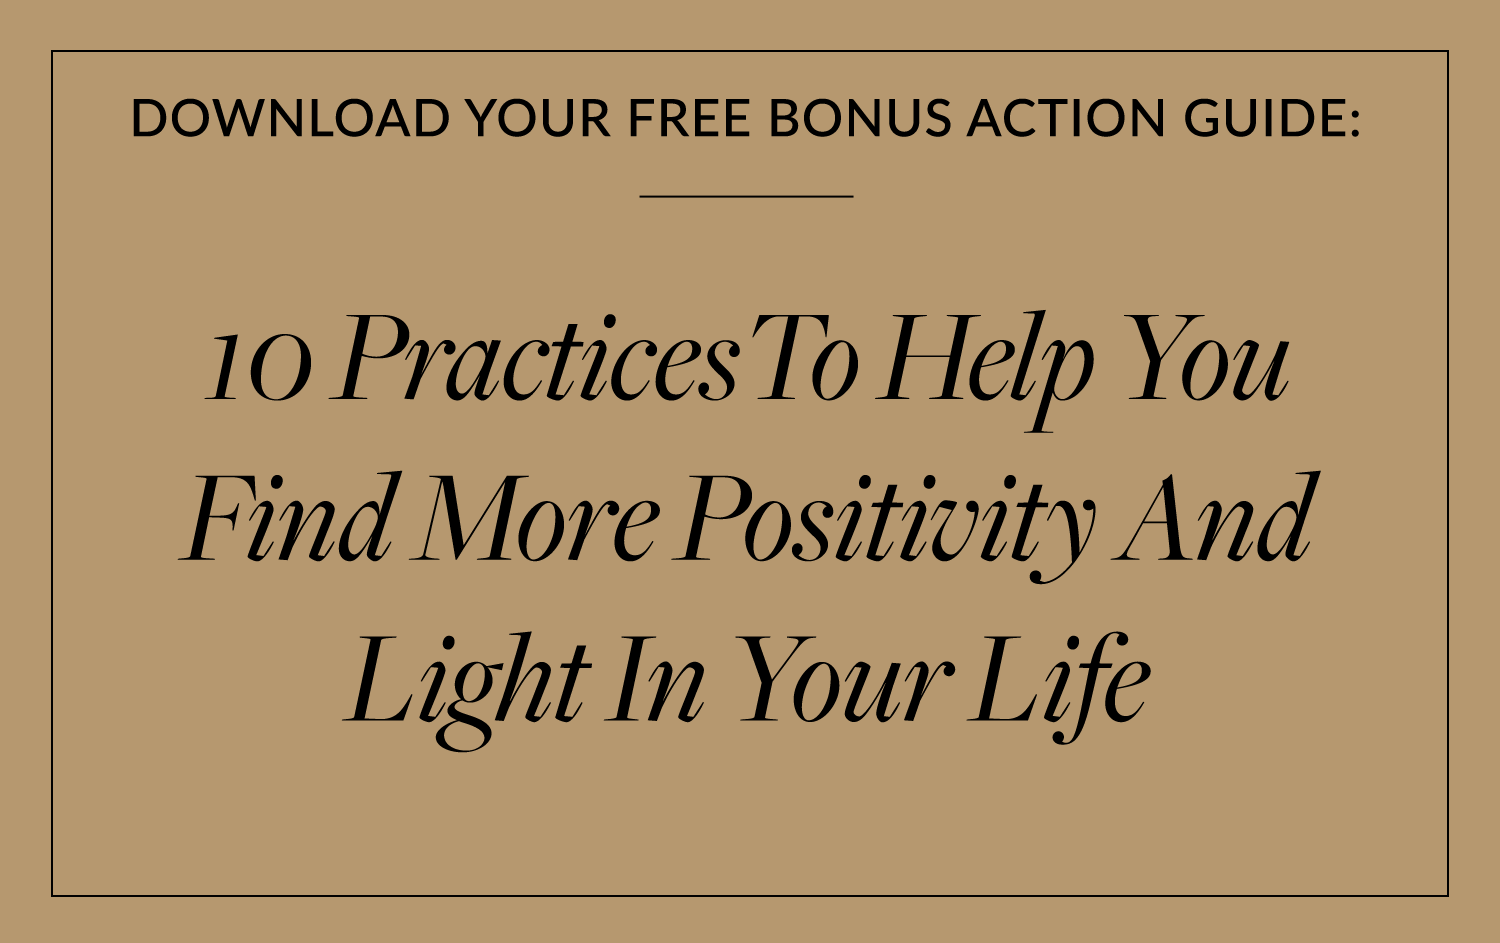 10 Practices To Help You Find More Positivity And Light In Your Life